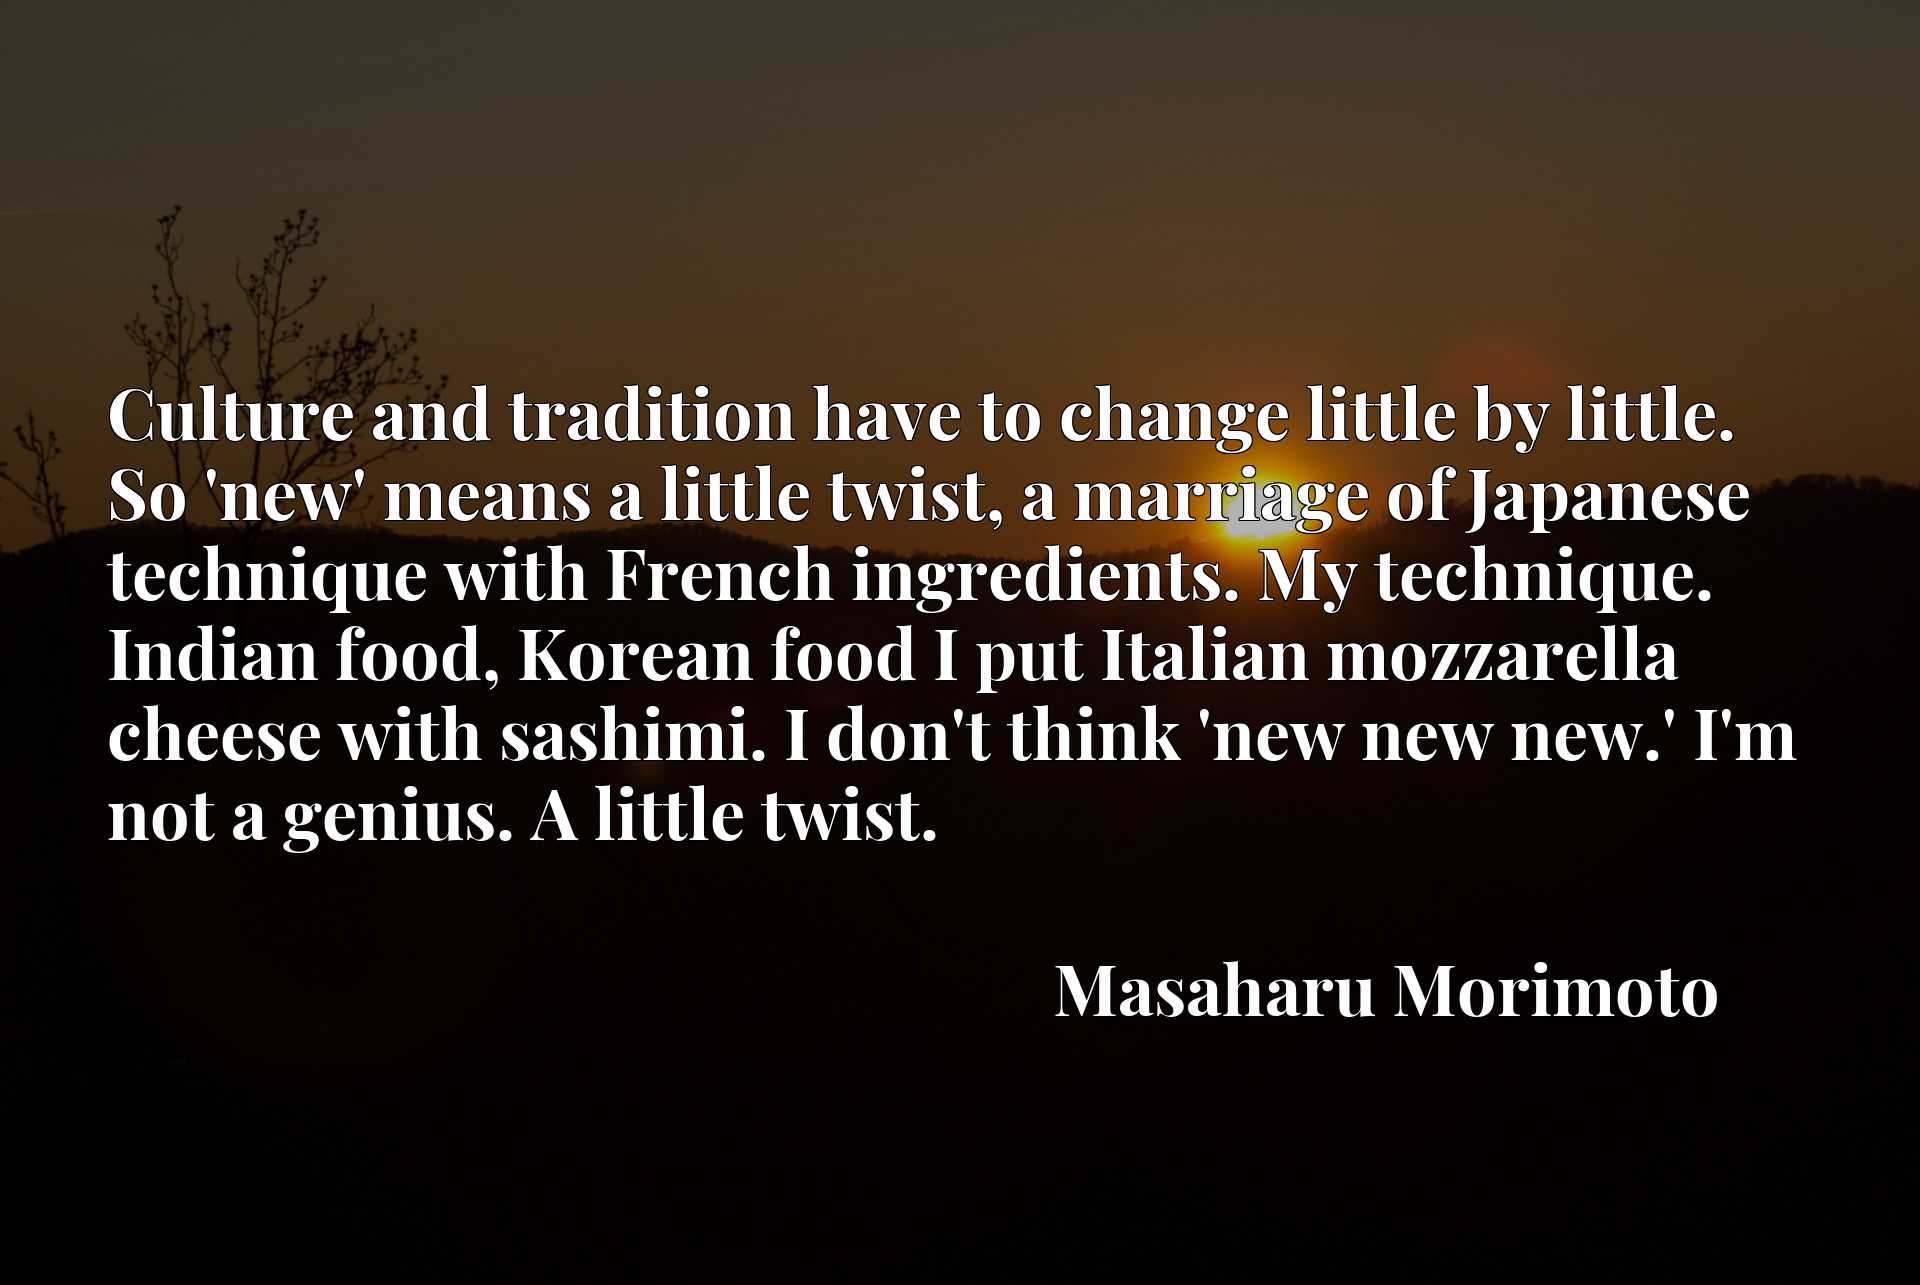 Culture and tradition have to change little by little. So 'new' means a little twist, a marriage of Japanese technique with French ingredients. My technique. Indian food, Korean food I put Italian mozzarella cheese with sashimi. I don't think 'new new new.' I'm not a genius. A little twist.